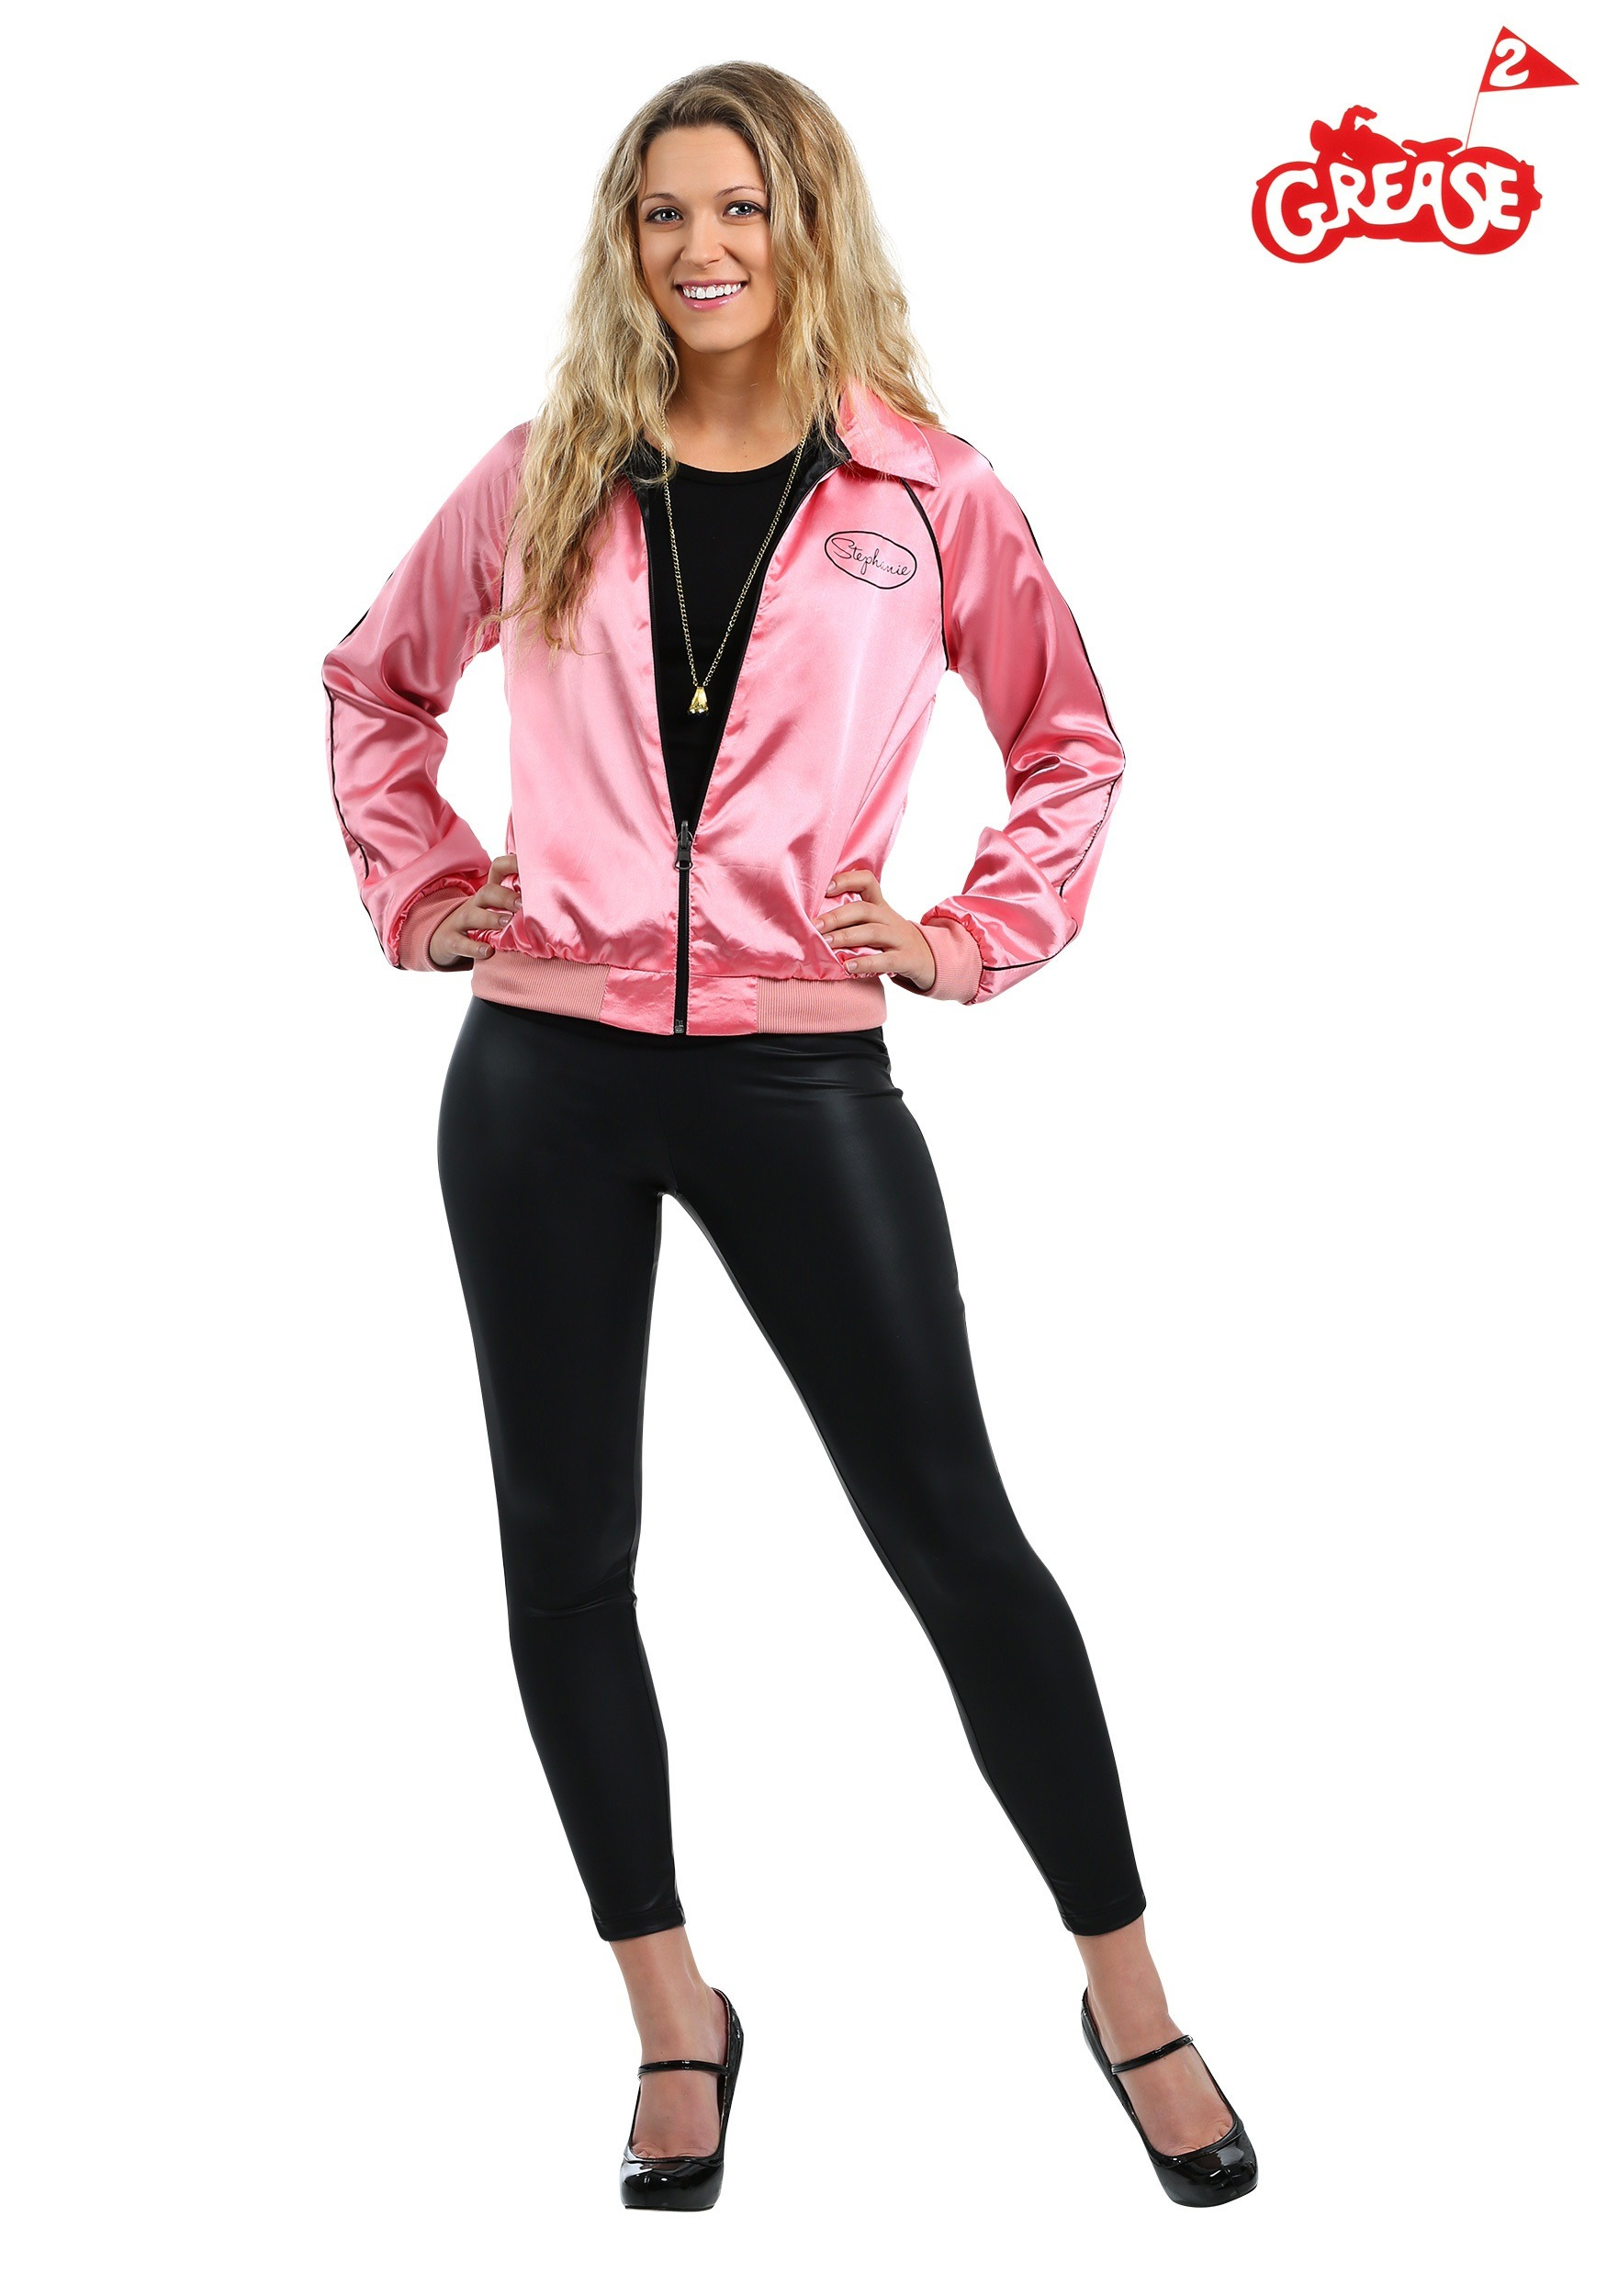 Stephanie S Pink Ladies Jacket Costume From Grease 2